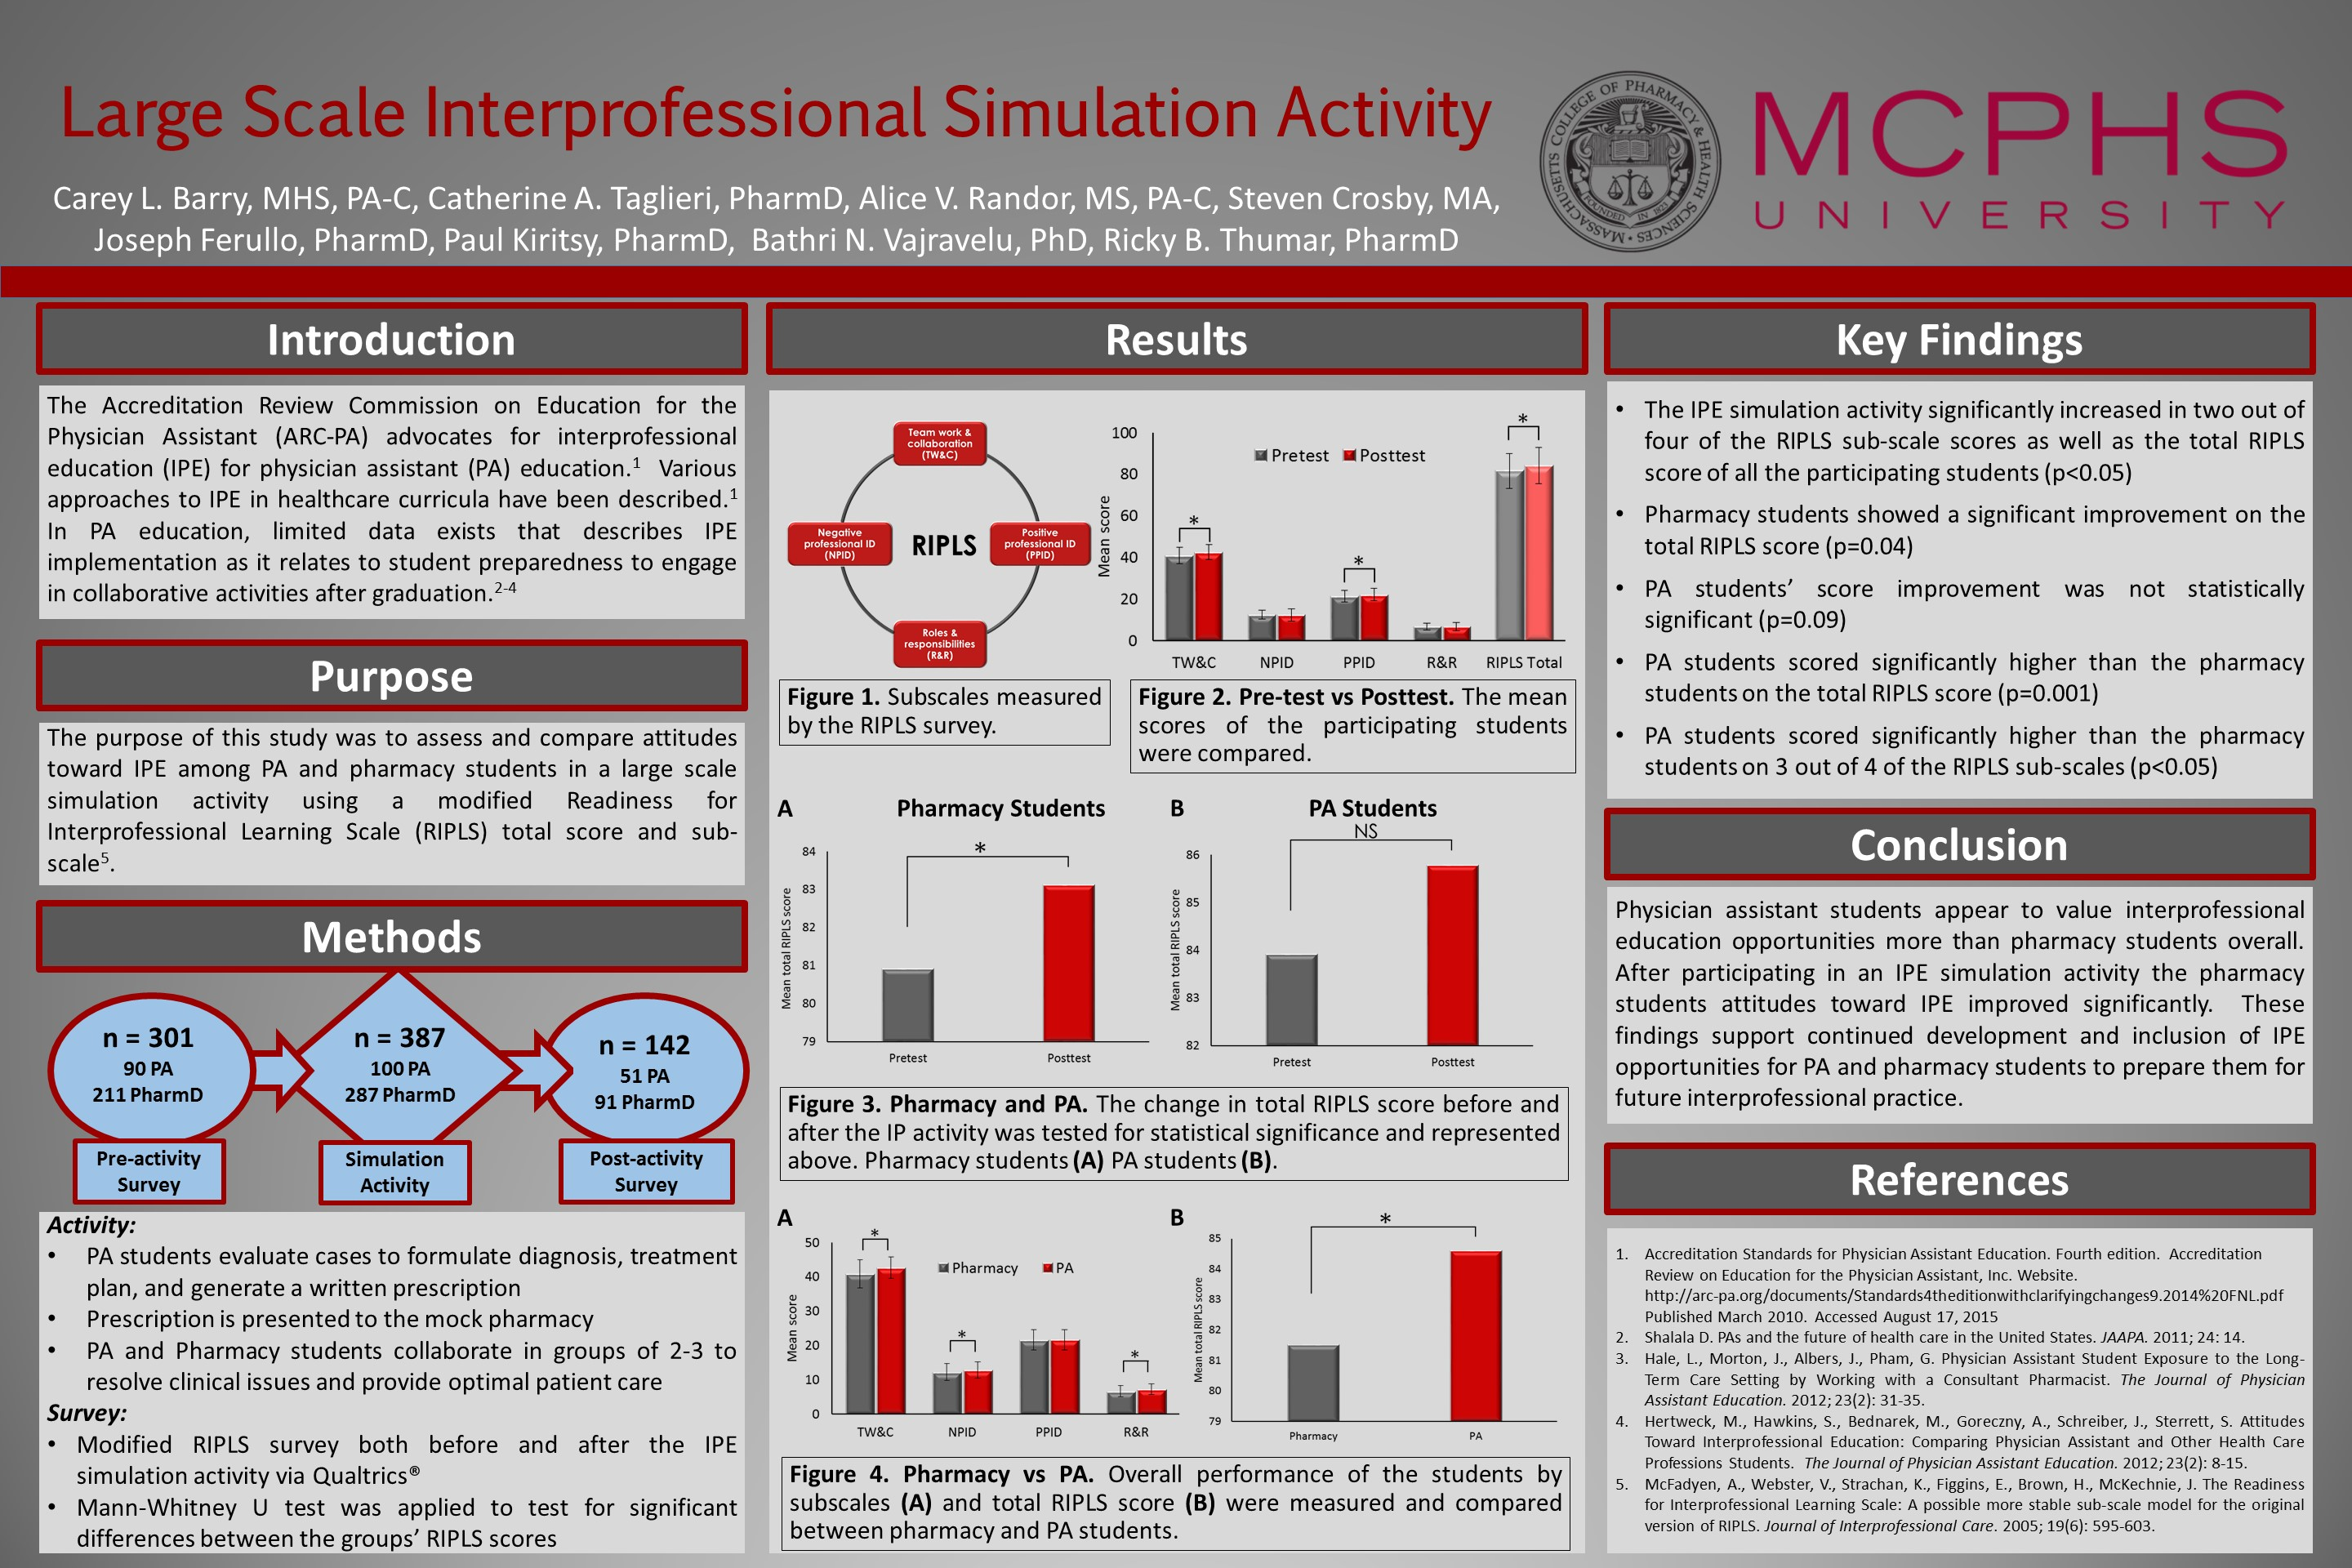 Large Scale Interprofessional Simulation Activity